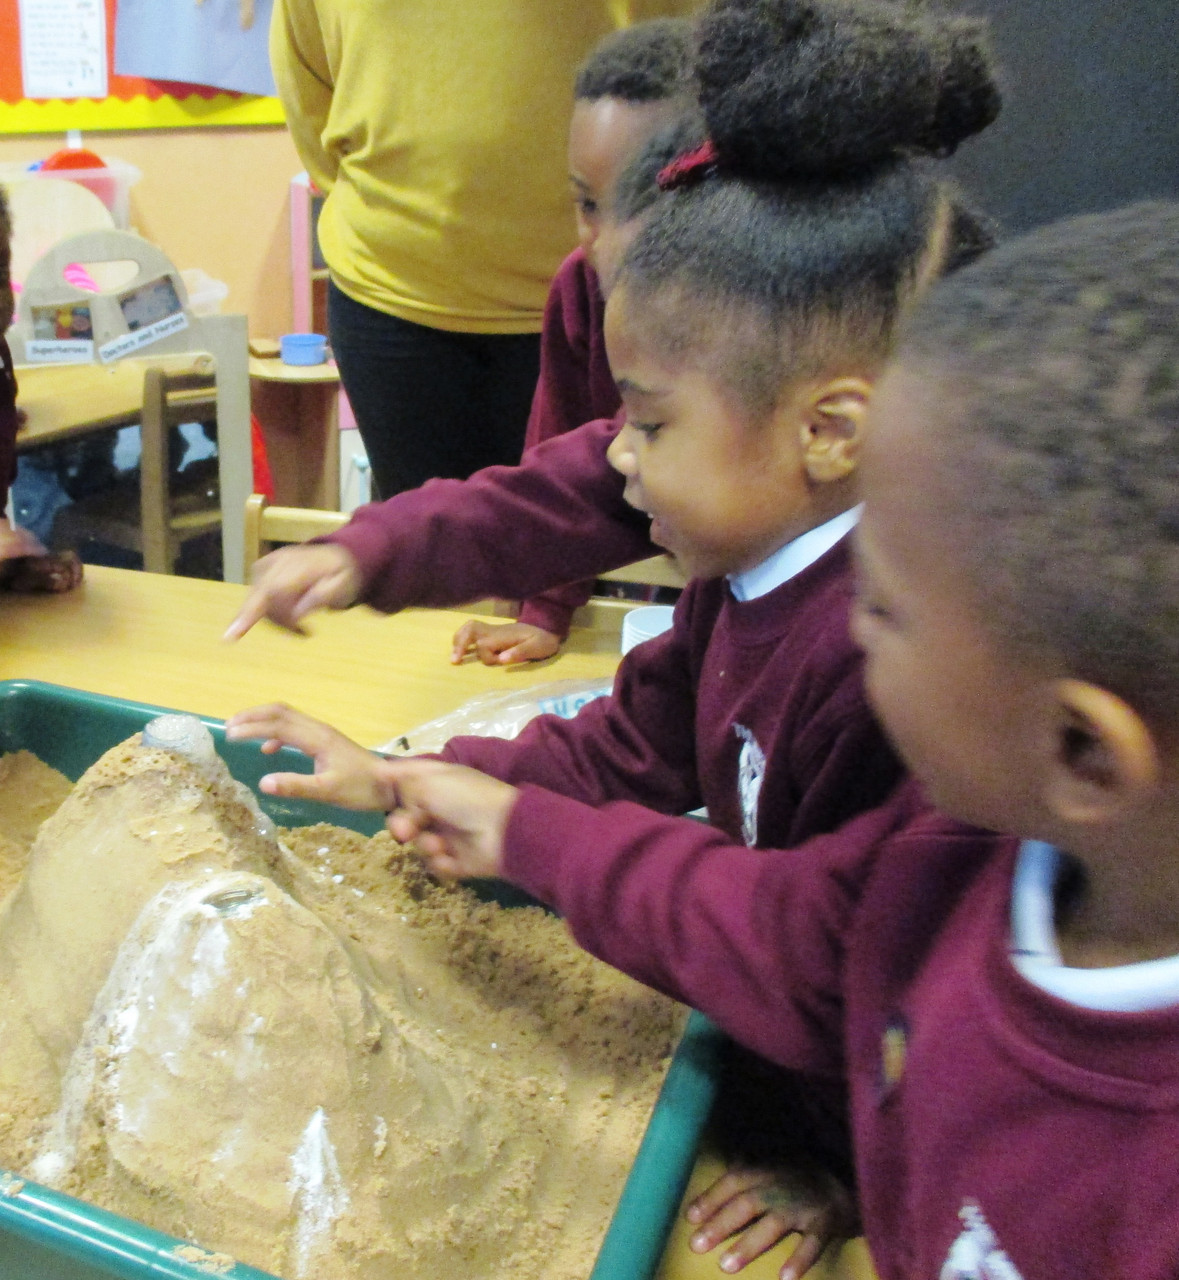 The volcanoes erupted!